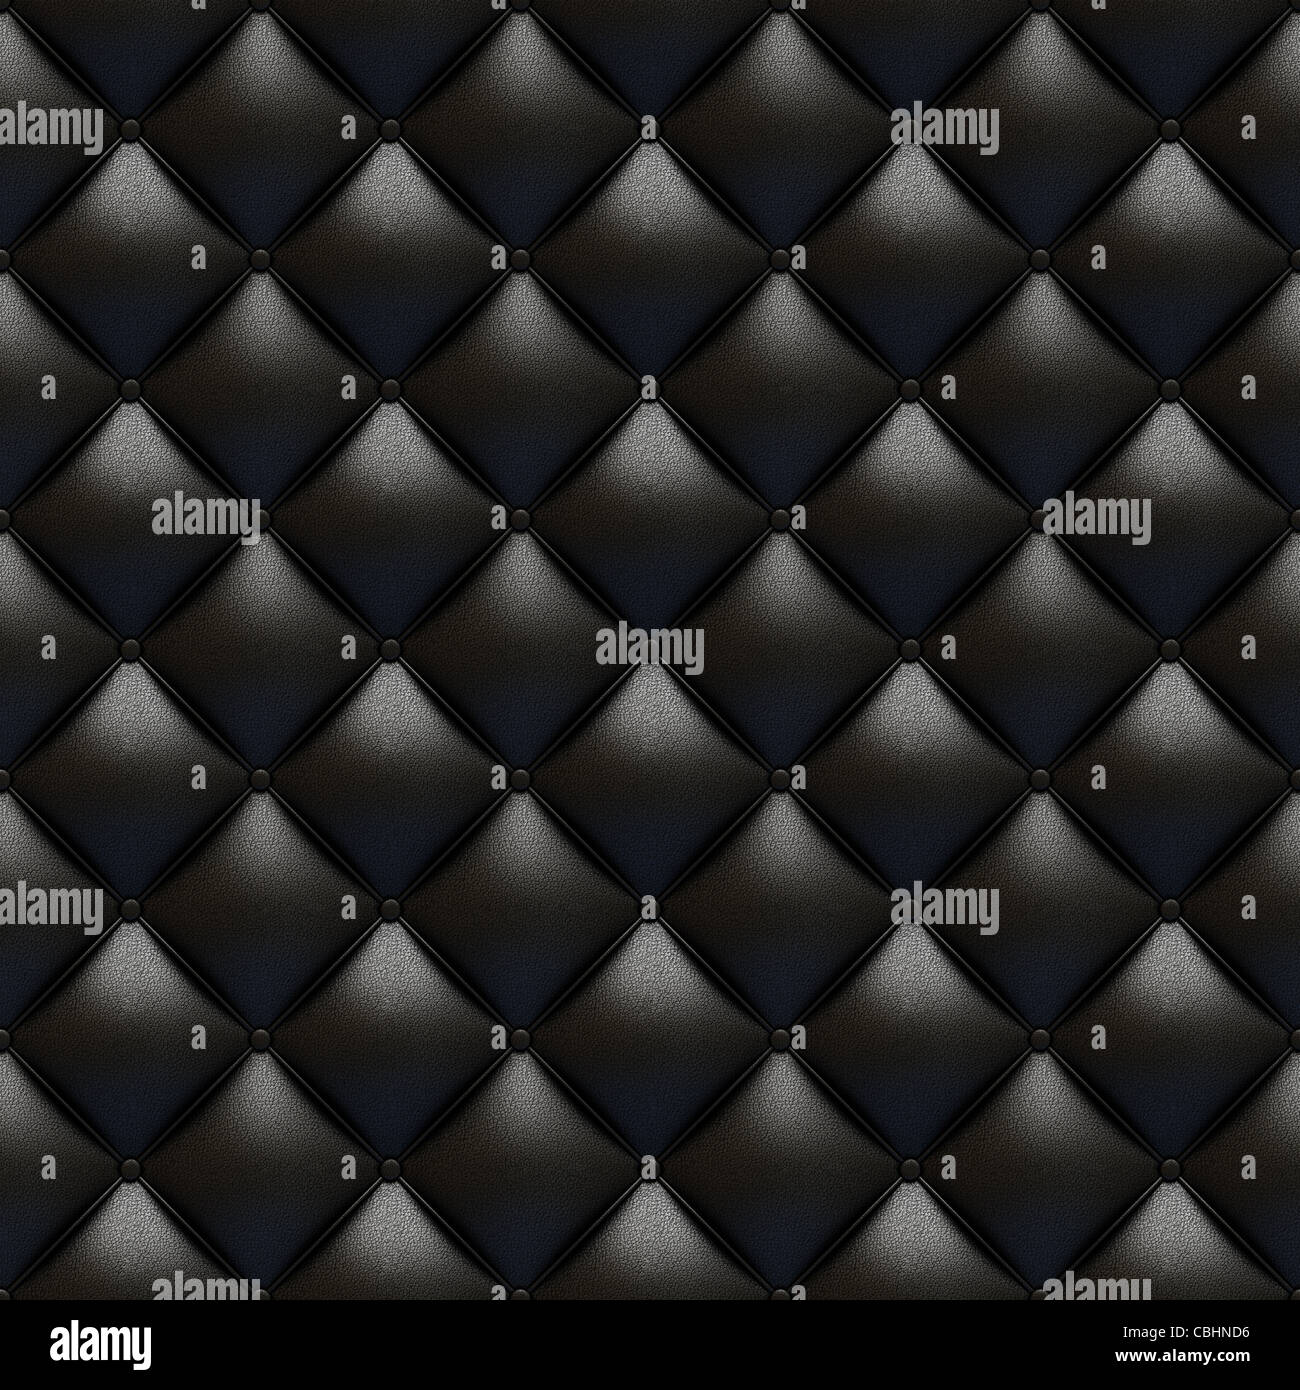 Black leather upholstery texture totally seamless and